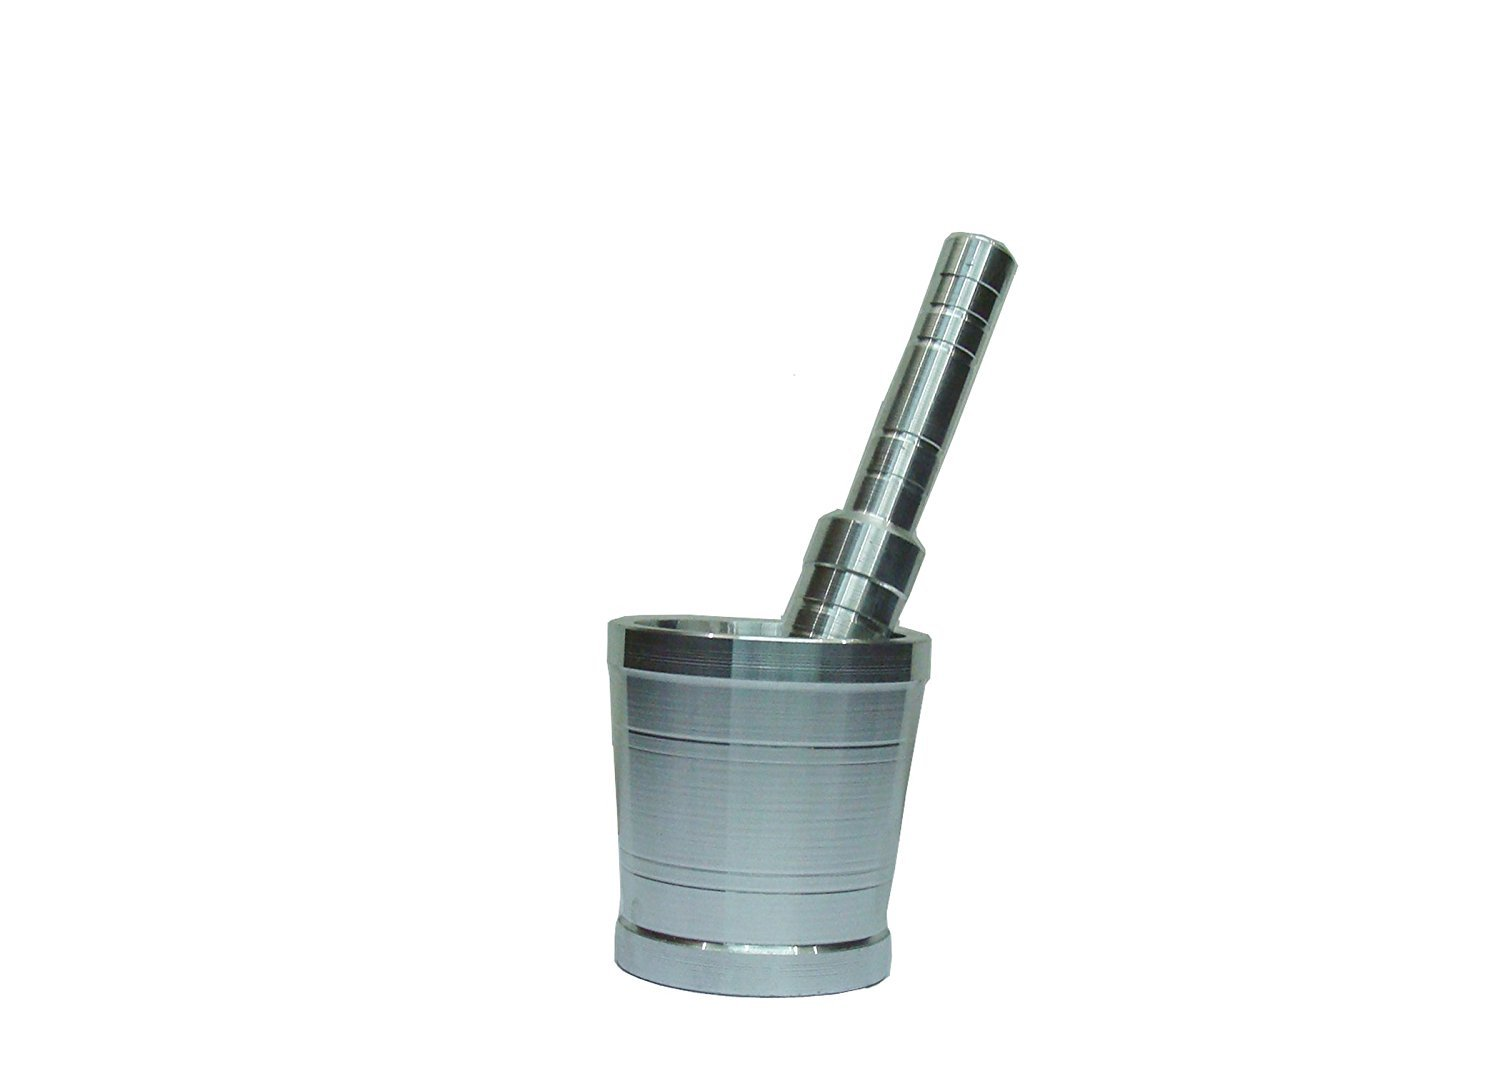 Stainless Steel Mortar & Pestle Set of 3 Wholesale